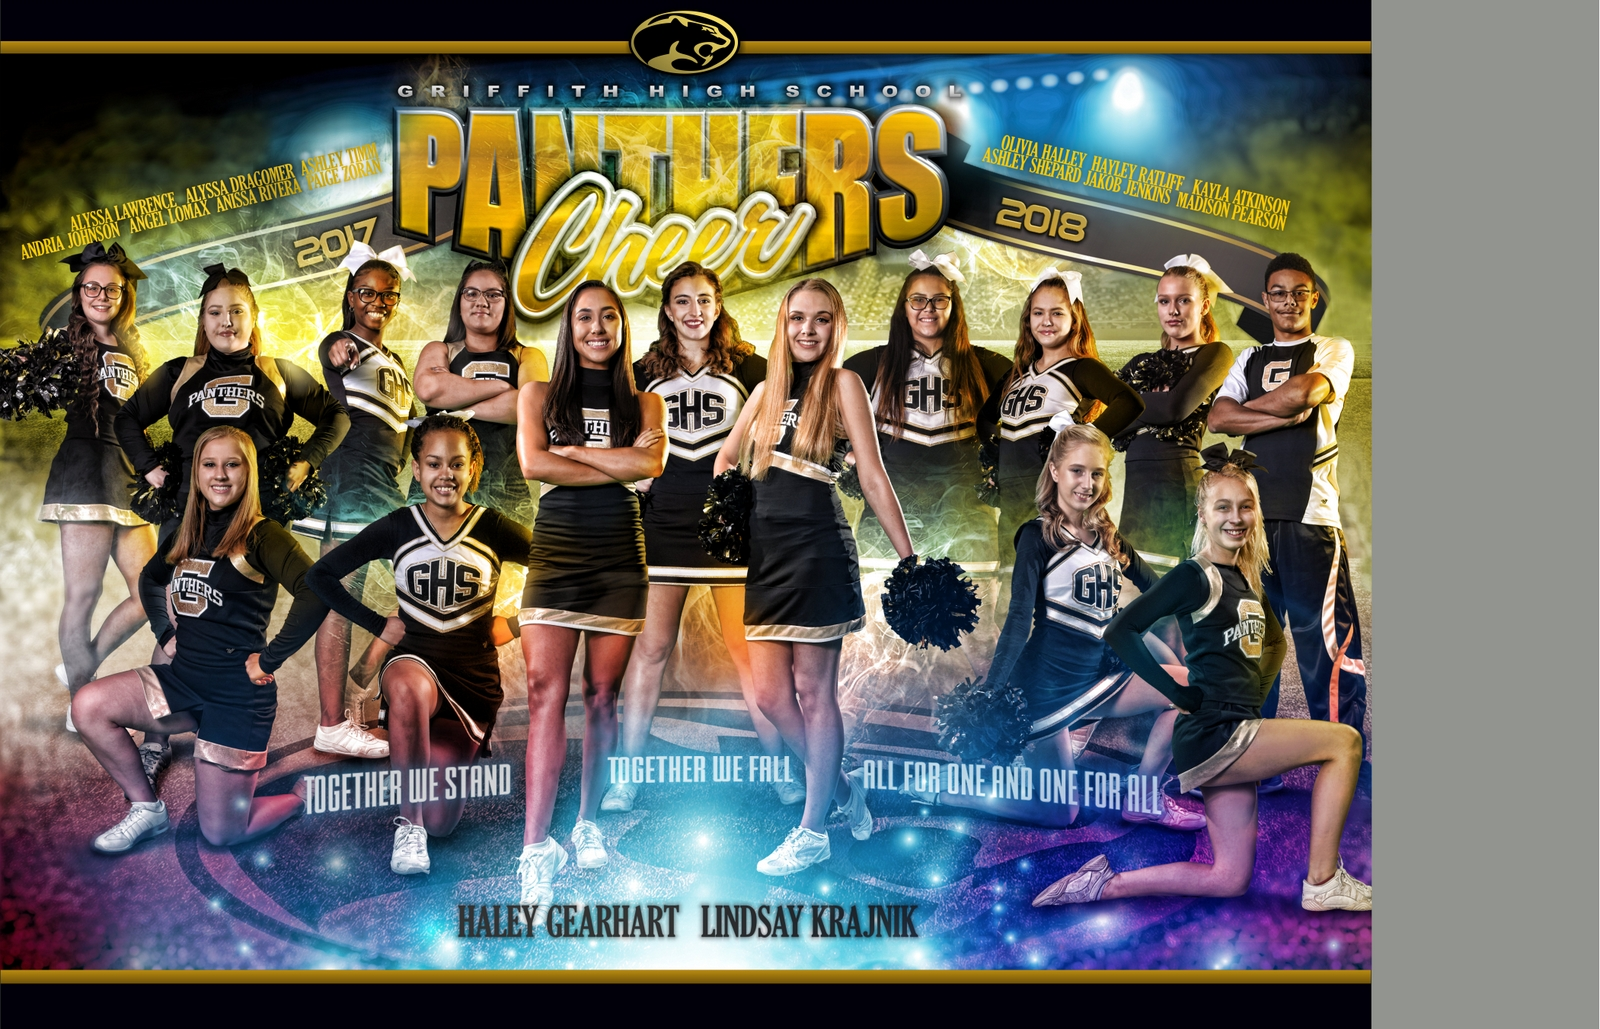 GRIFFITH CHEER TEAM POSTER FOR PRINT 2